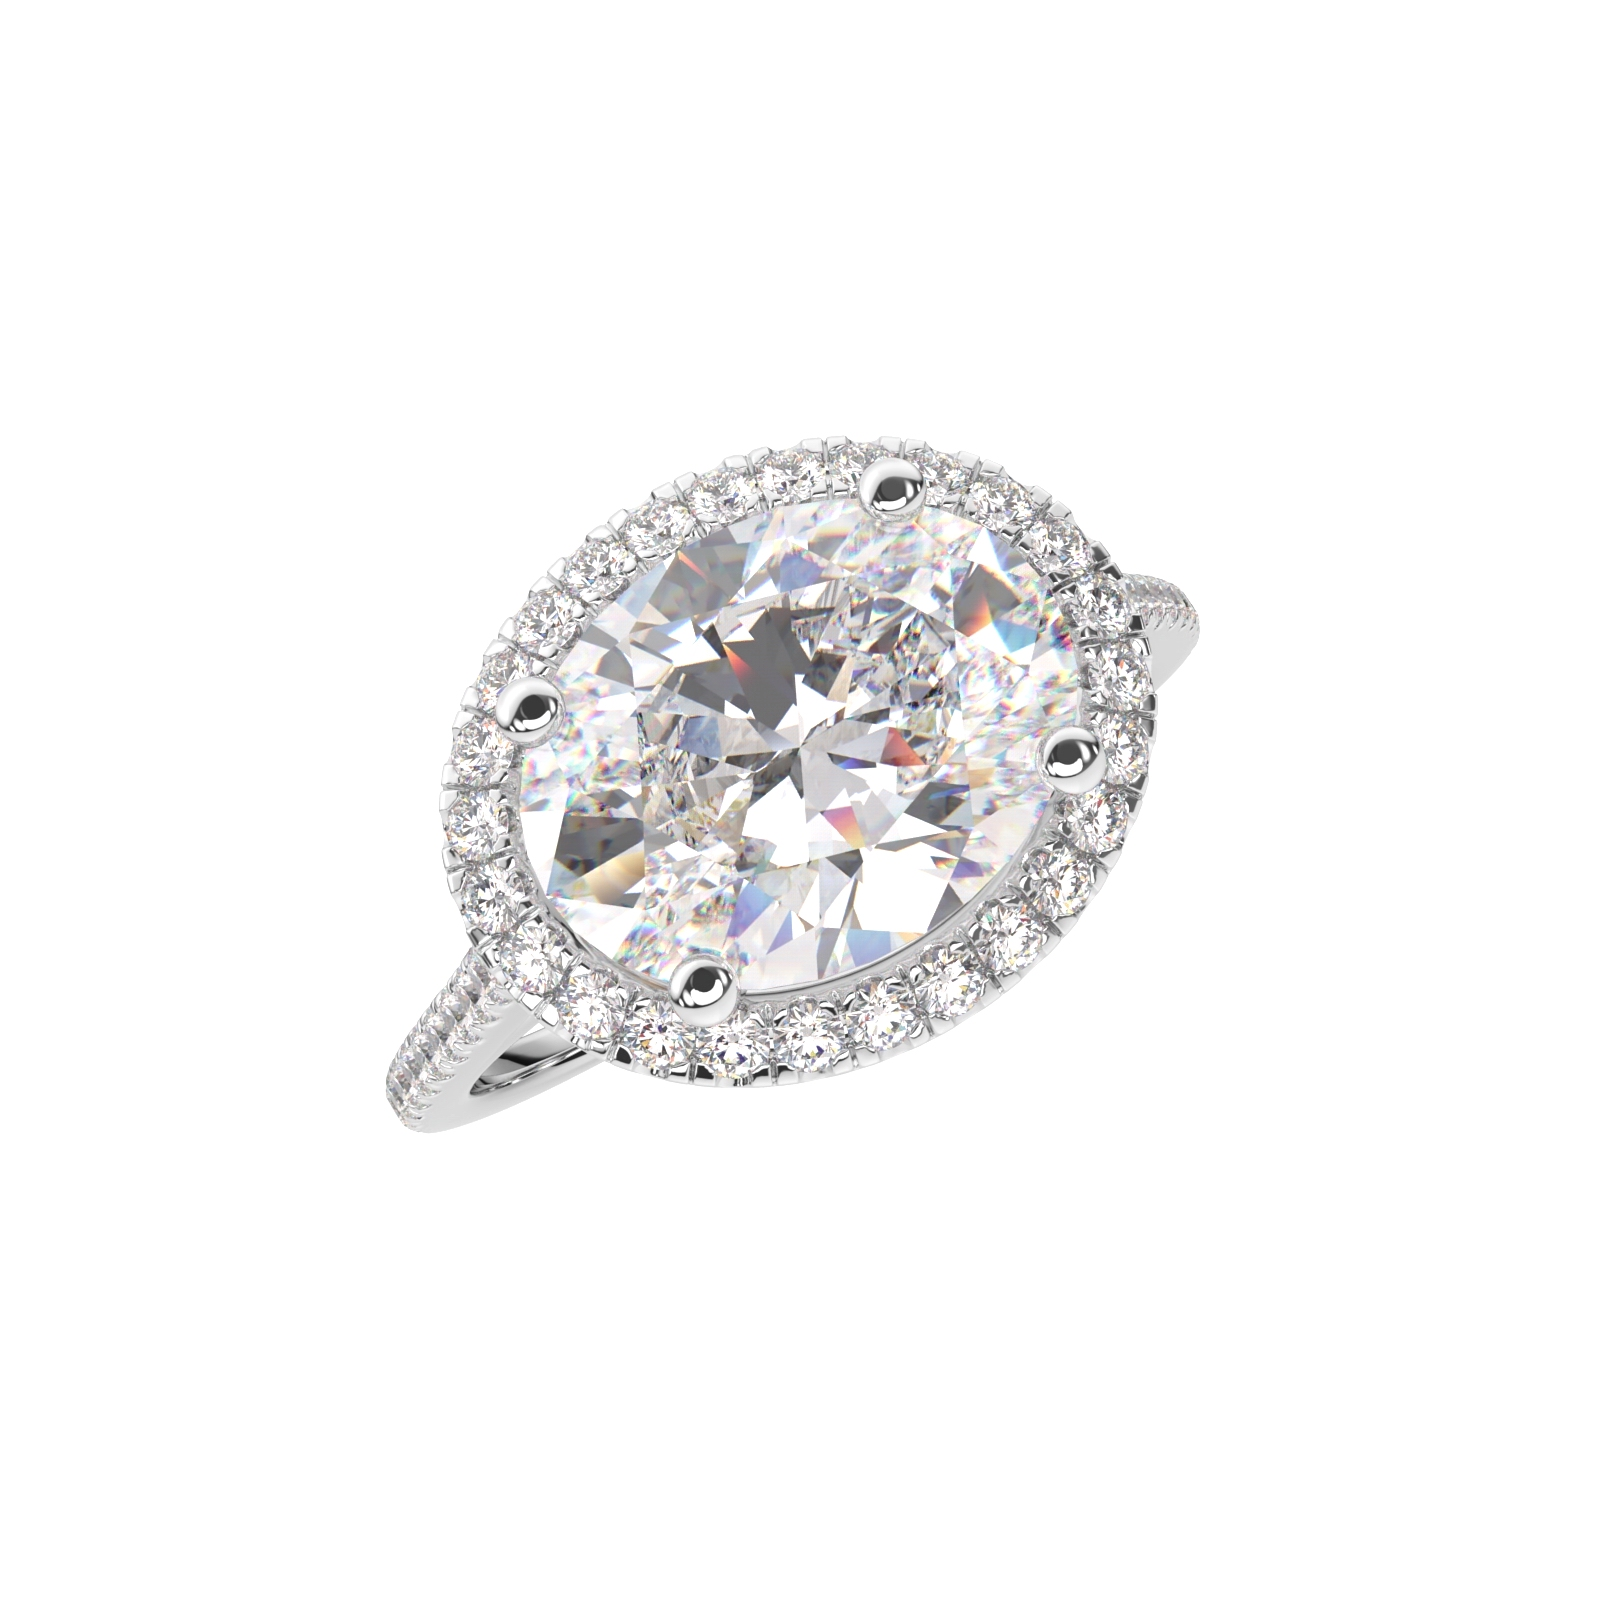 Oval Diamond Engagement Ring Top View